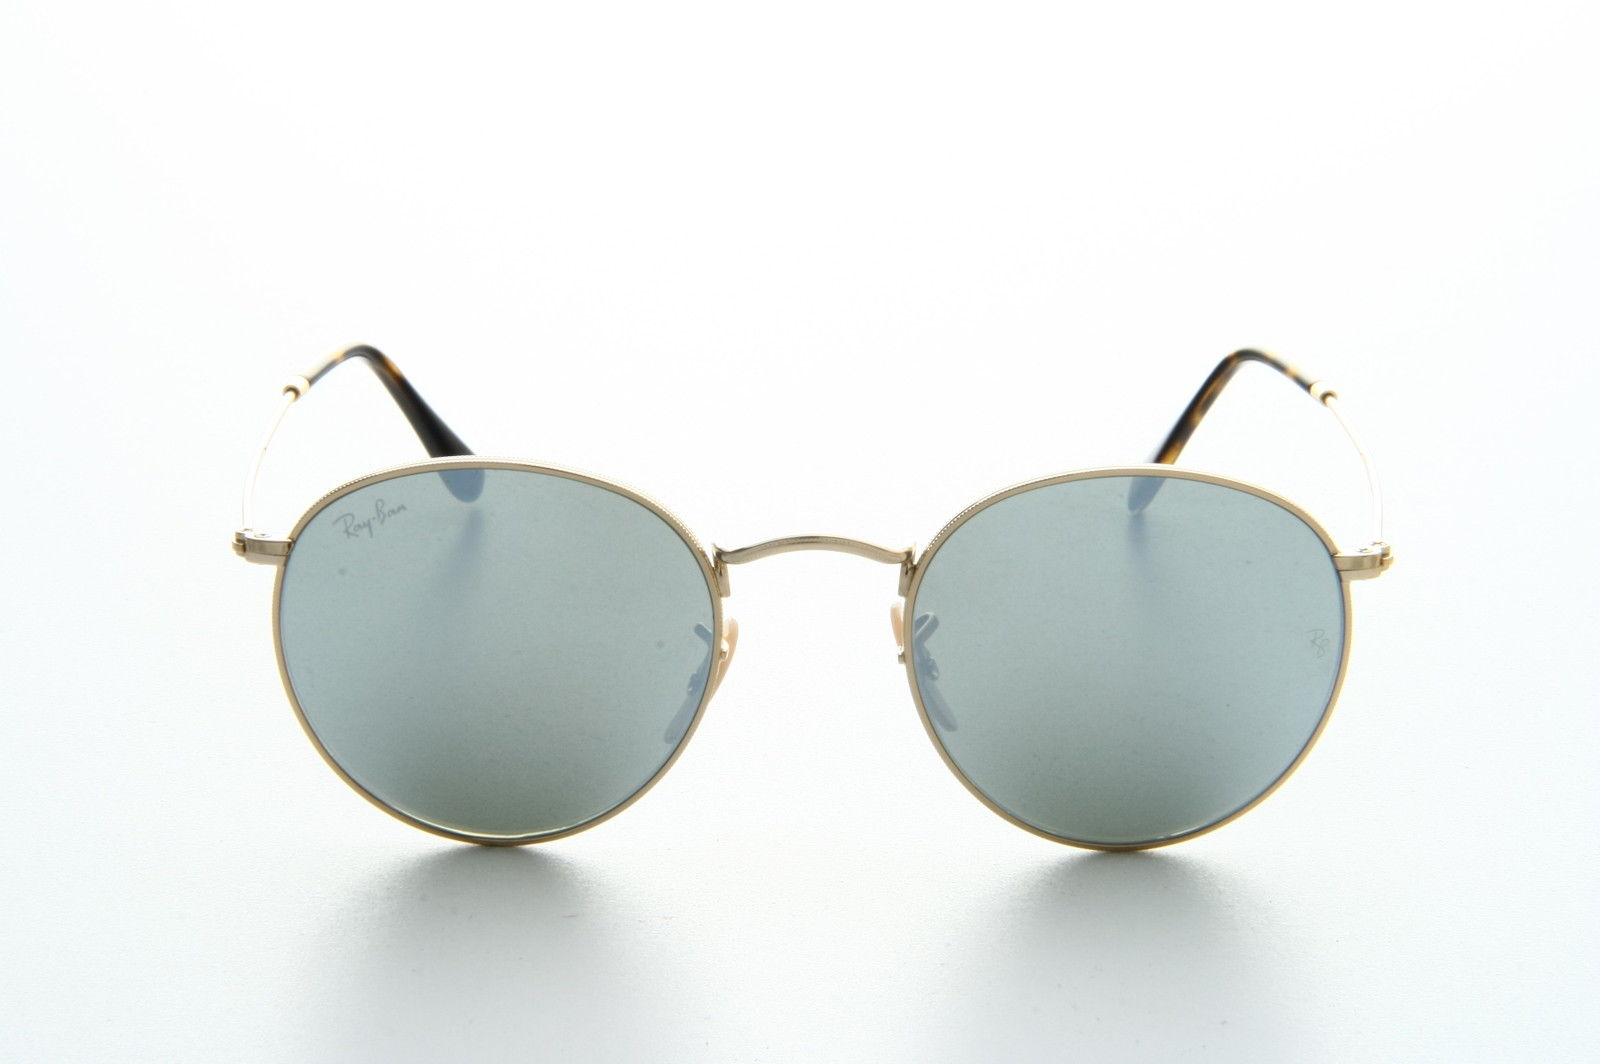 Ray Ban RB3447N 001/30 Gold silver Flat round metal